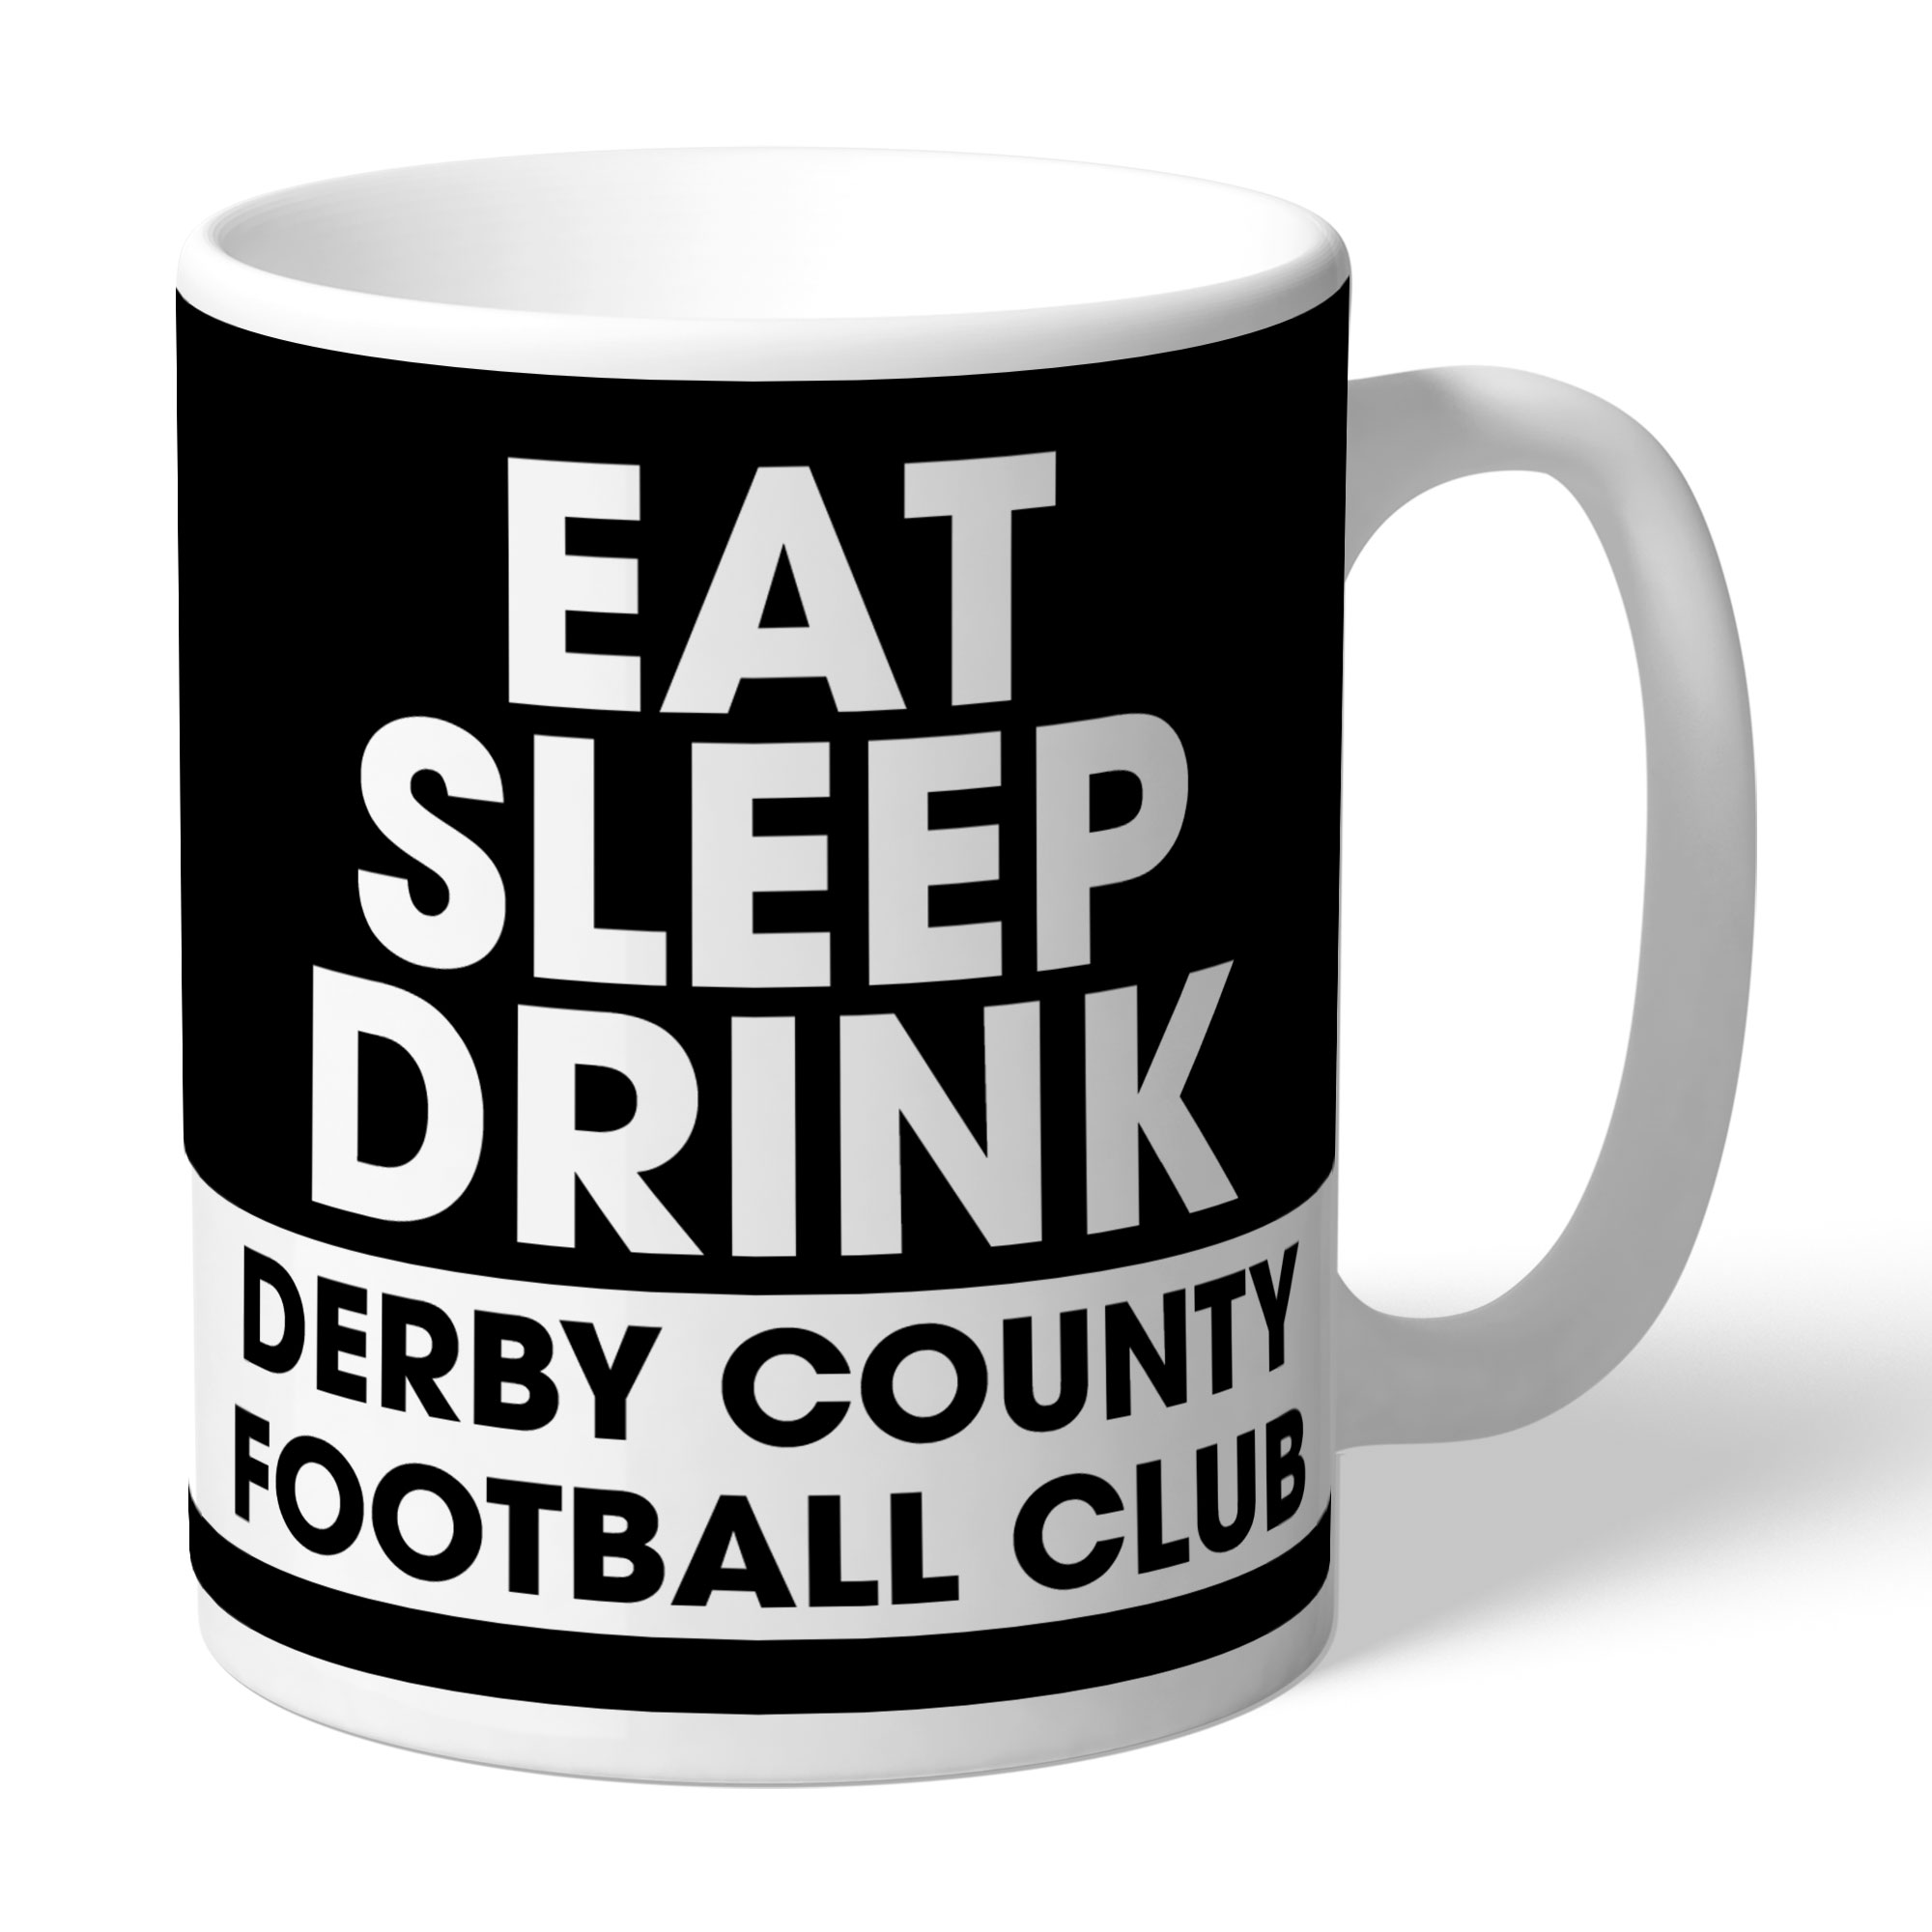 Derby County Eat Sleep Drink Mug